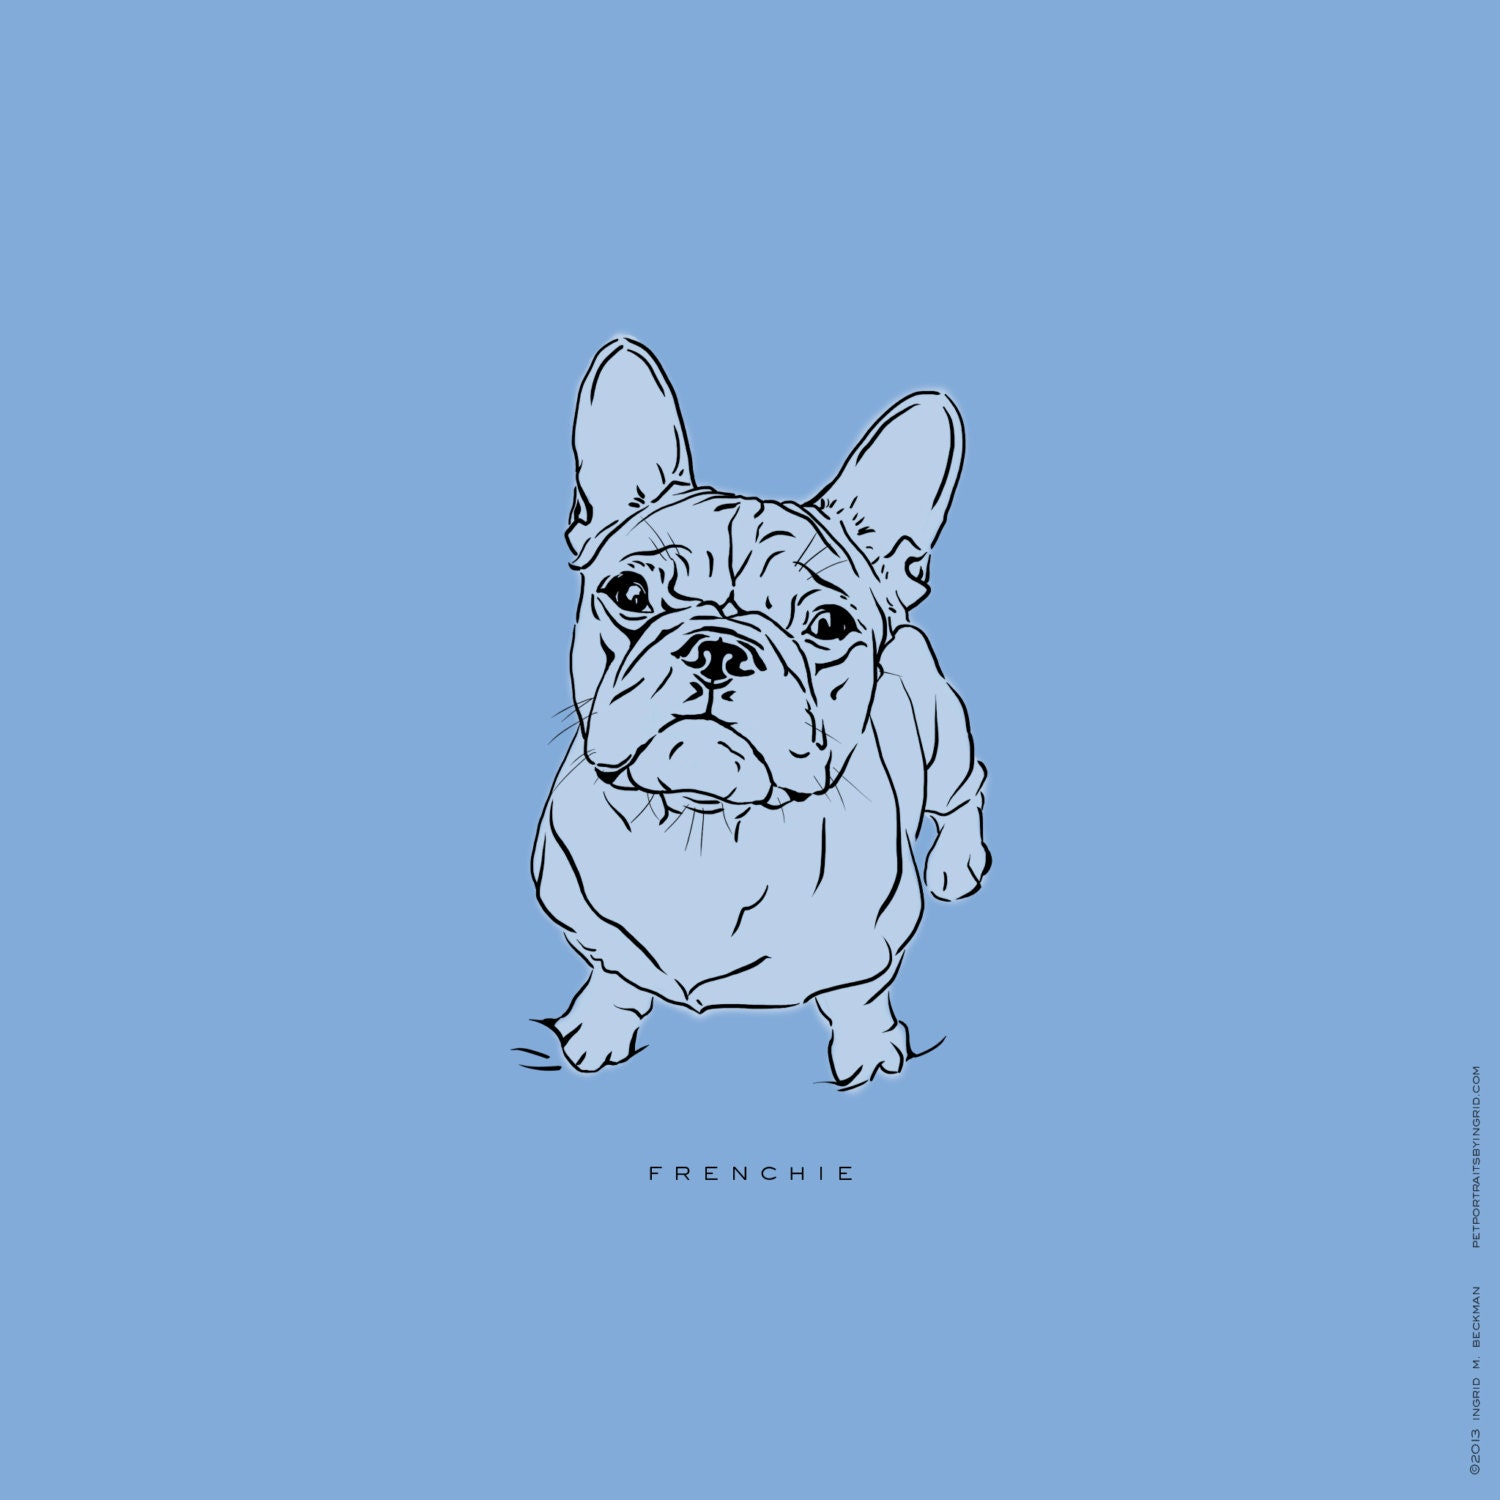 Line Art Etsy : French bulldog digital art print personalize by lineartprints